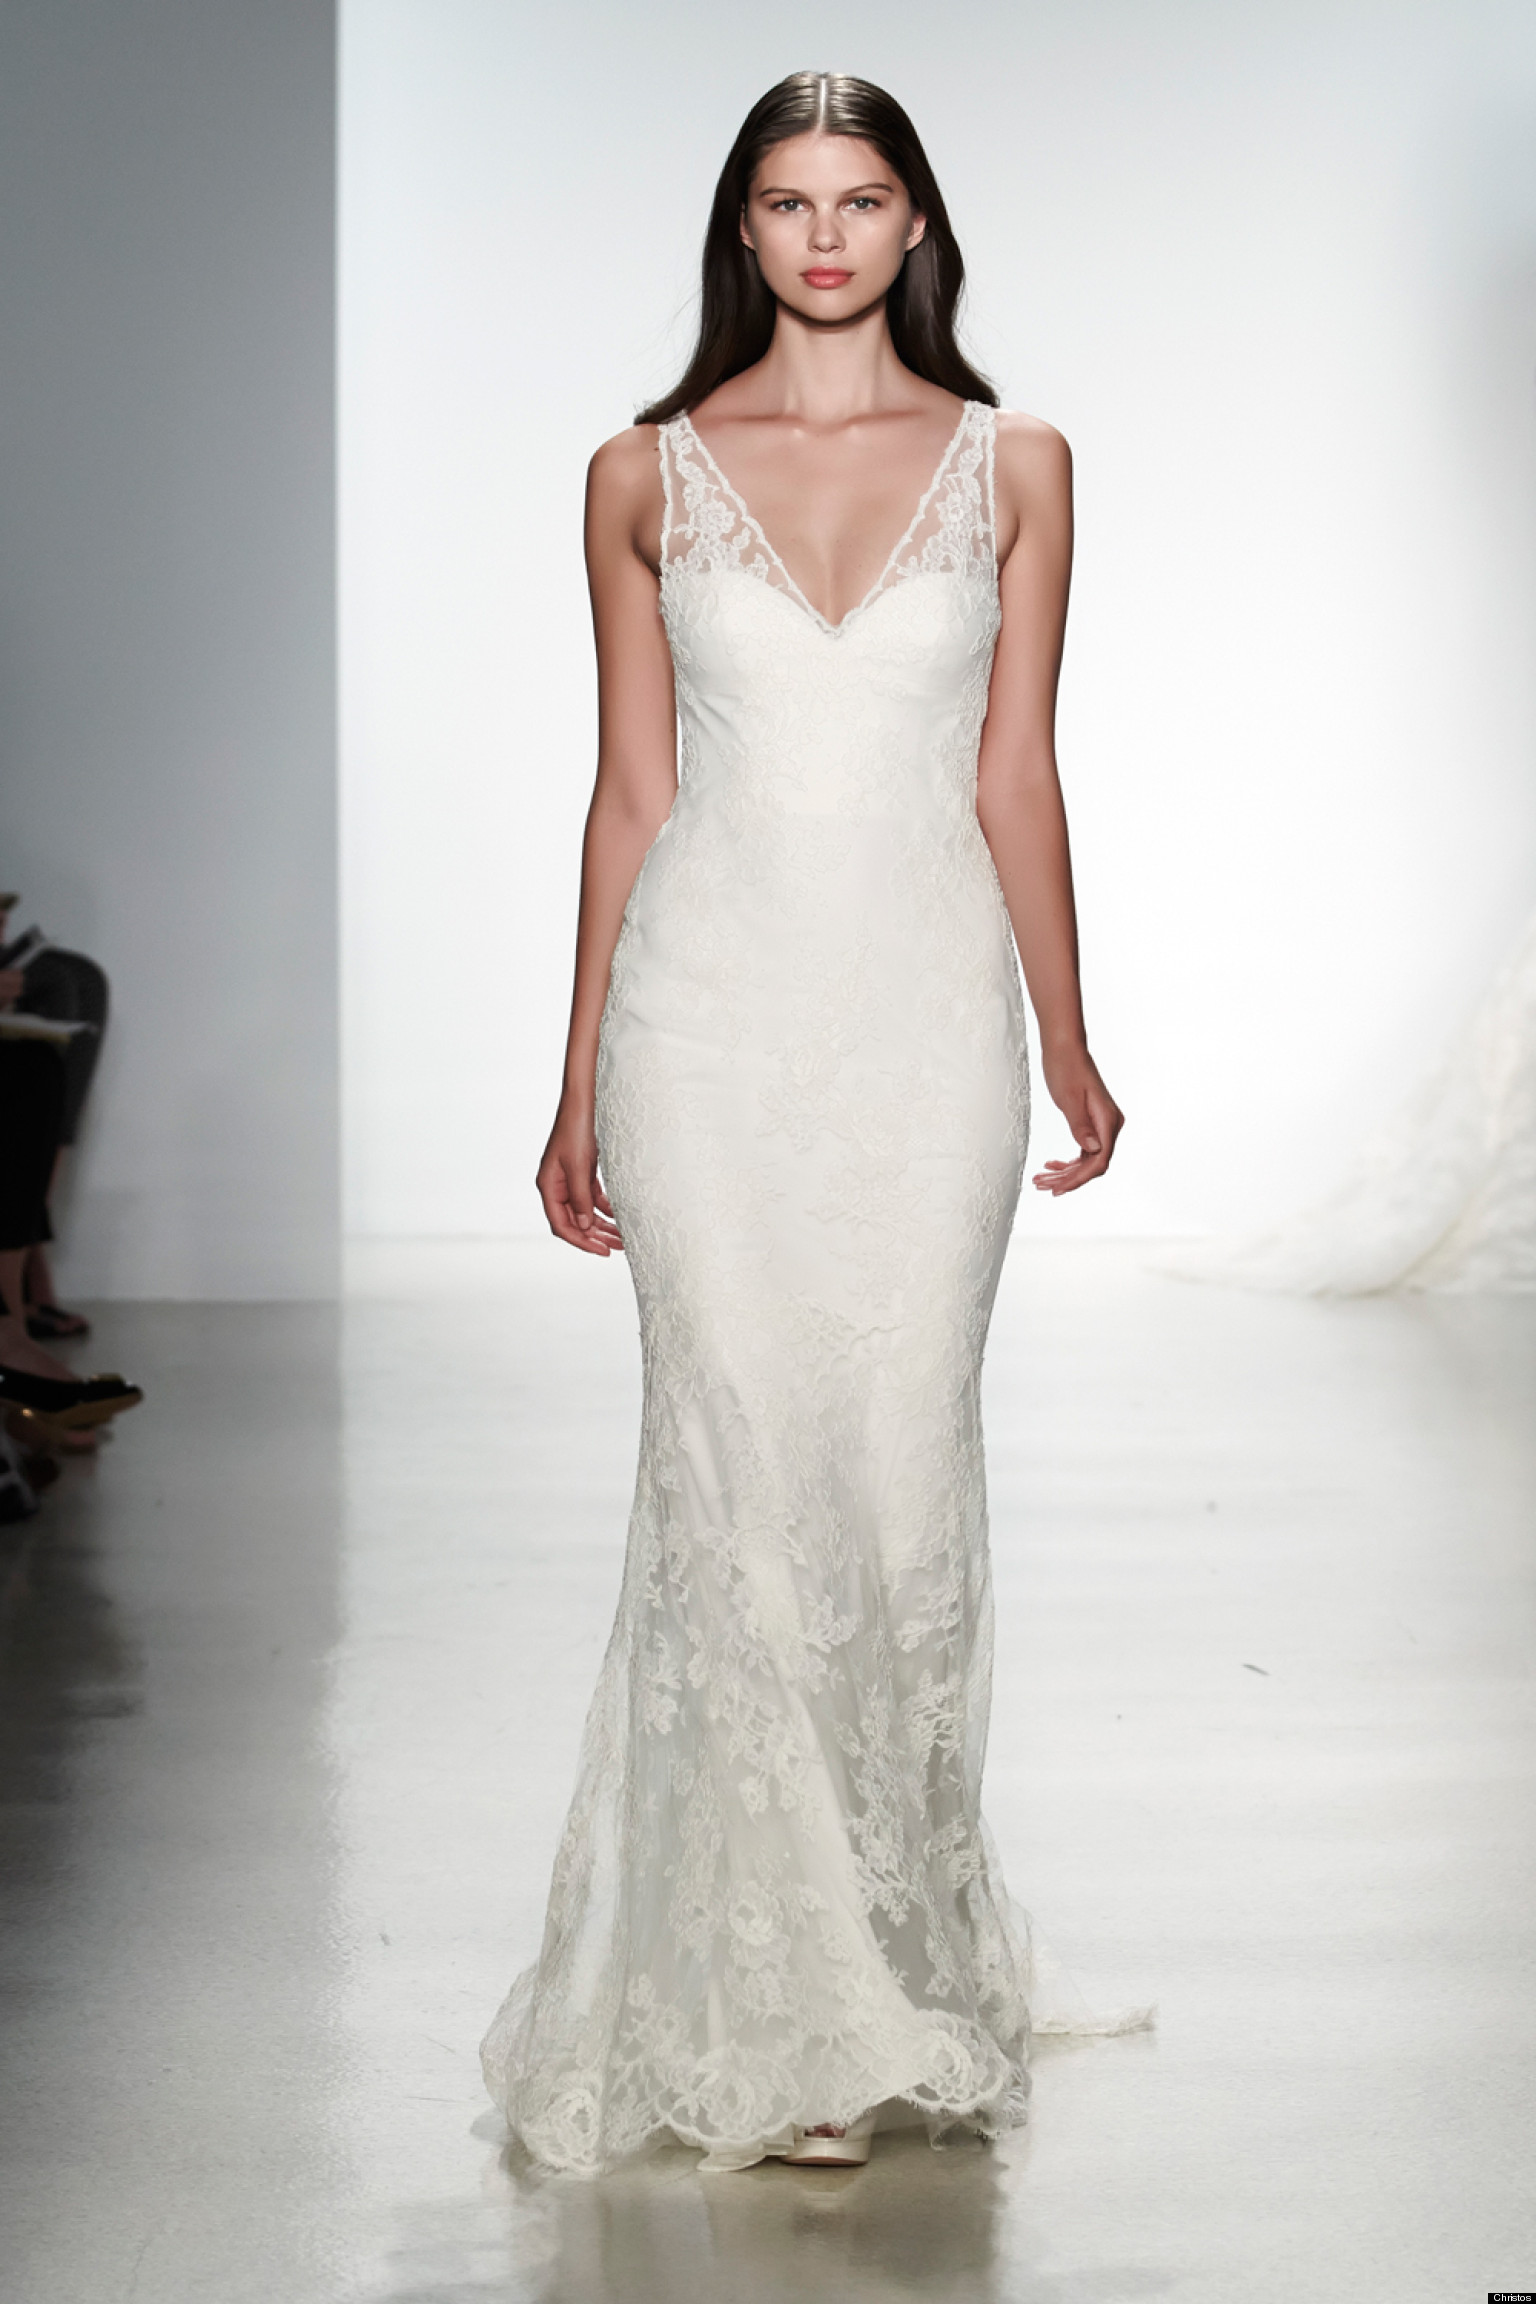 Choosing the best wedding gown for your body type huffpost for Wedding dresses for tall skinny brides